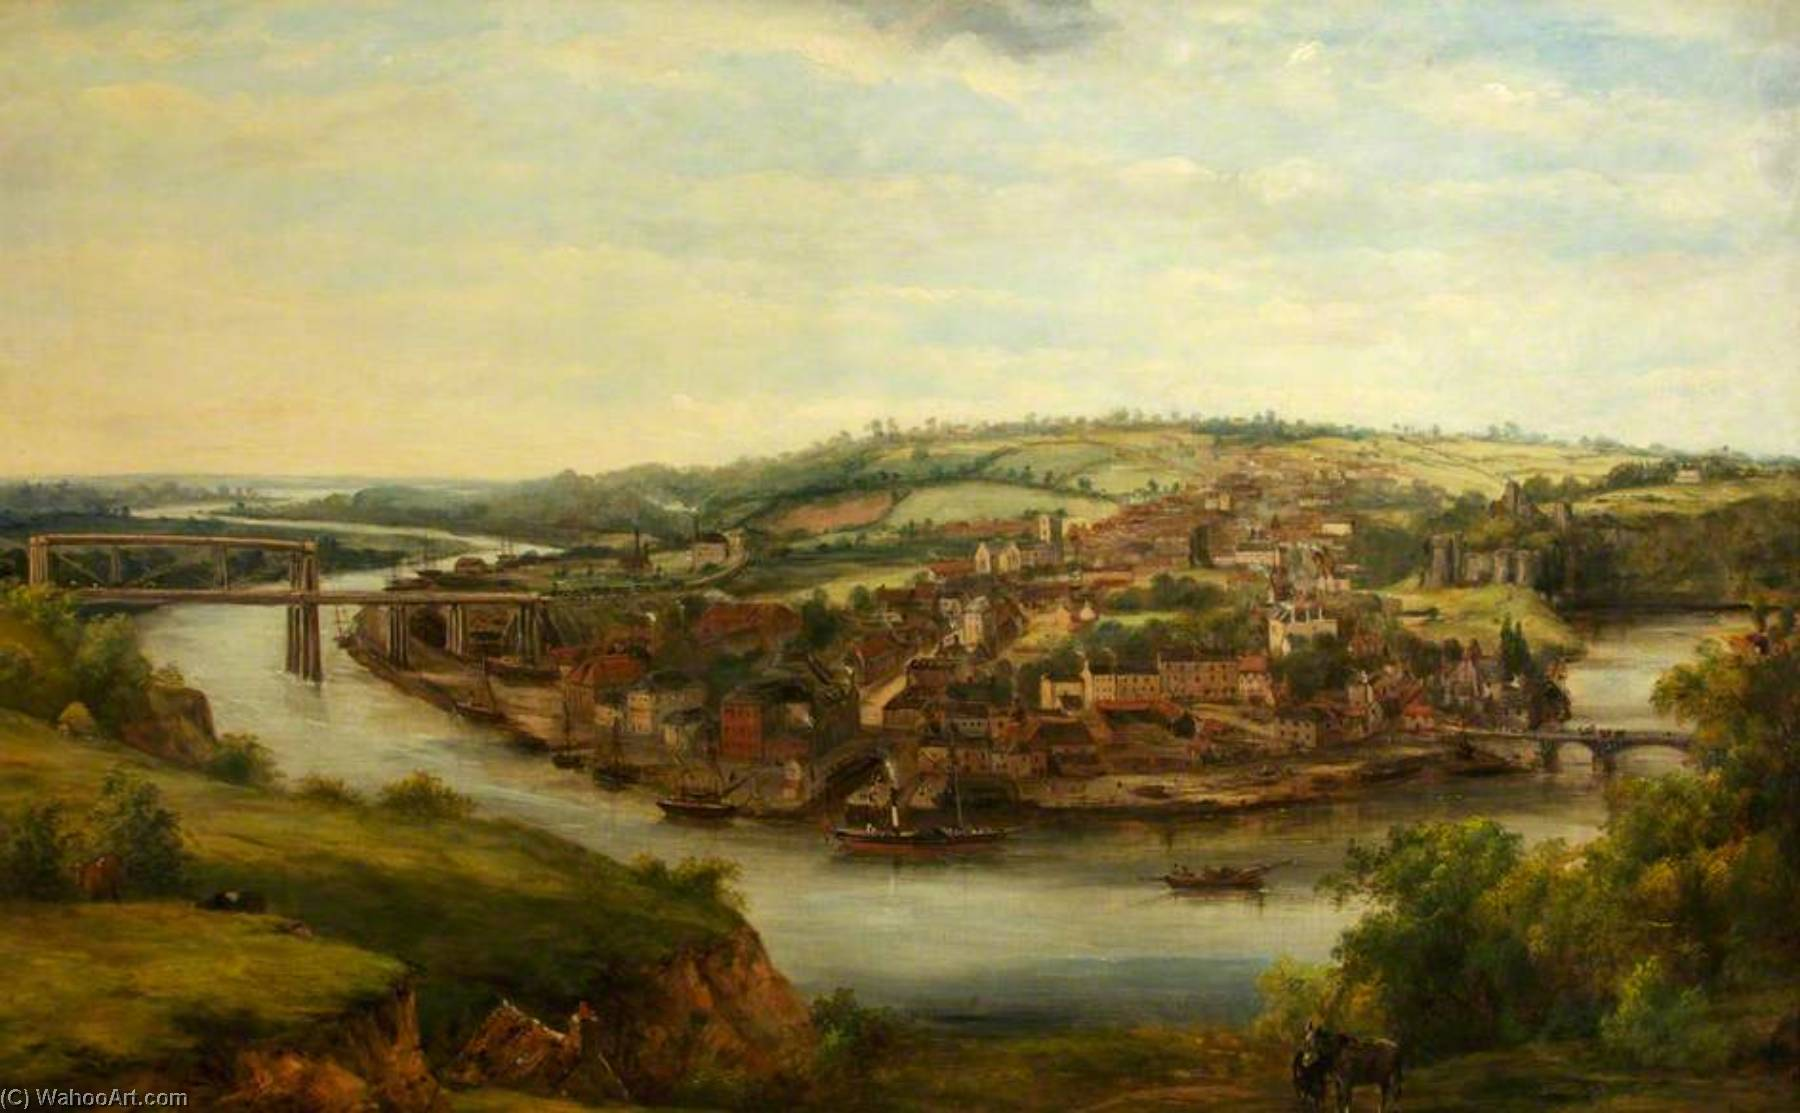 Chepstow, 1855 por Frederick Waters (William) Watts (1800-1870, United Kingdom) | Reproduções De Pinturas Famosas | WahooArt.com